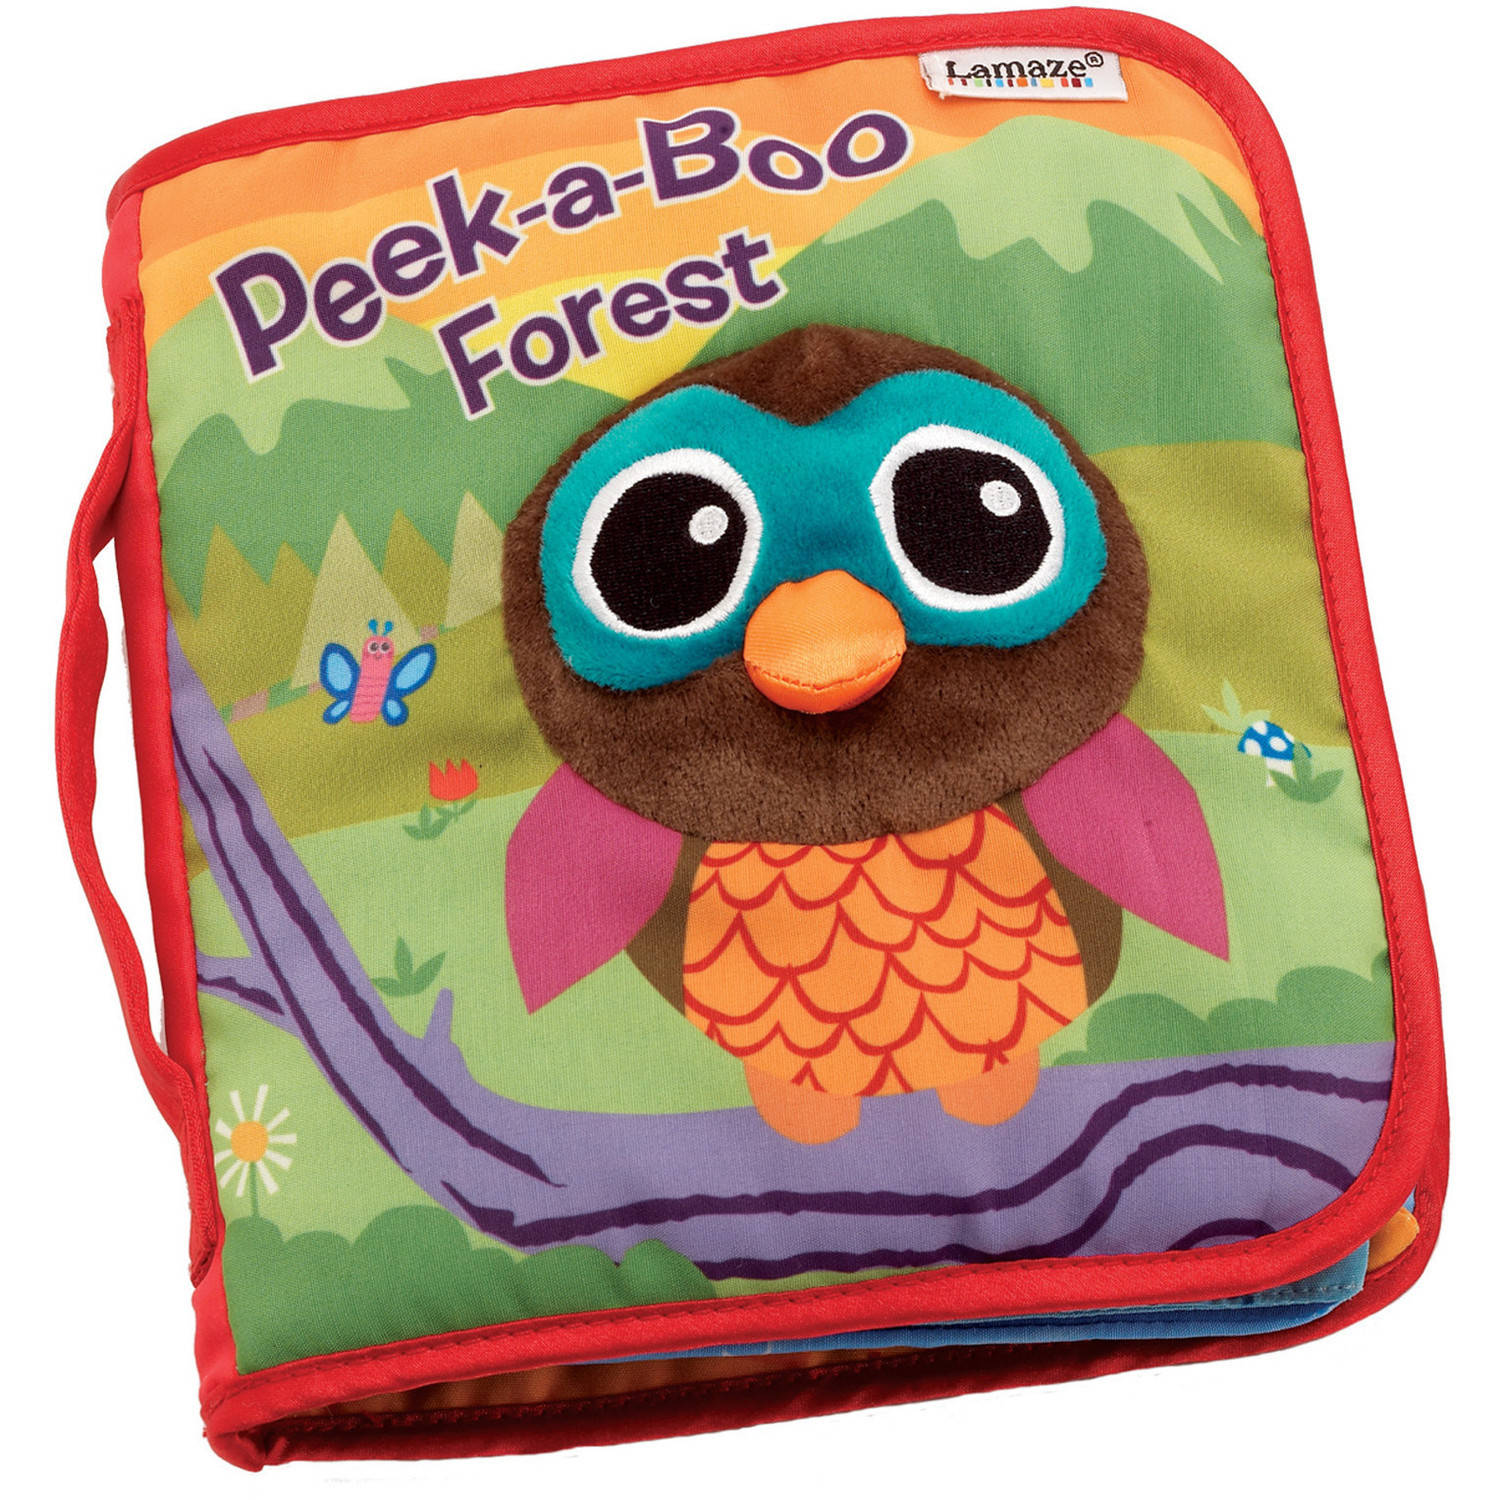 Peek-A-Boo Forest Soft Book